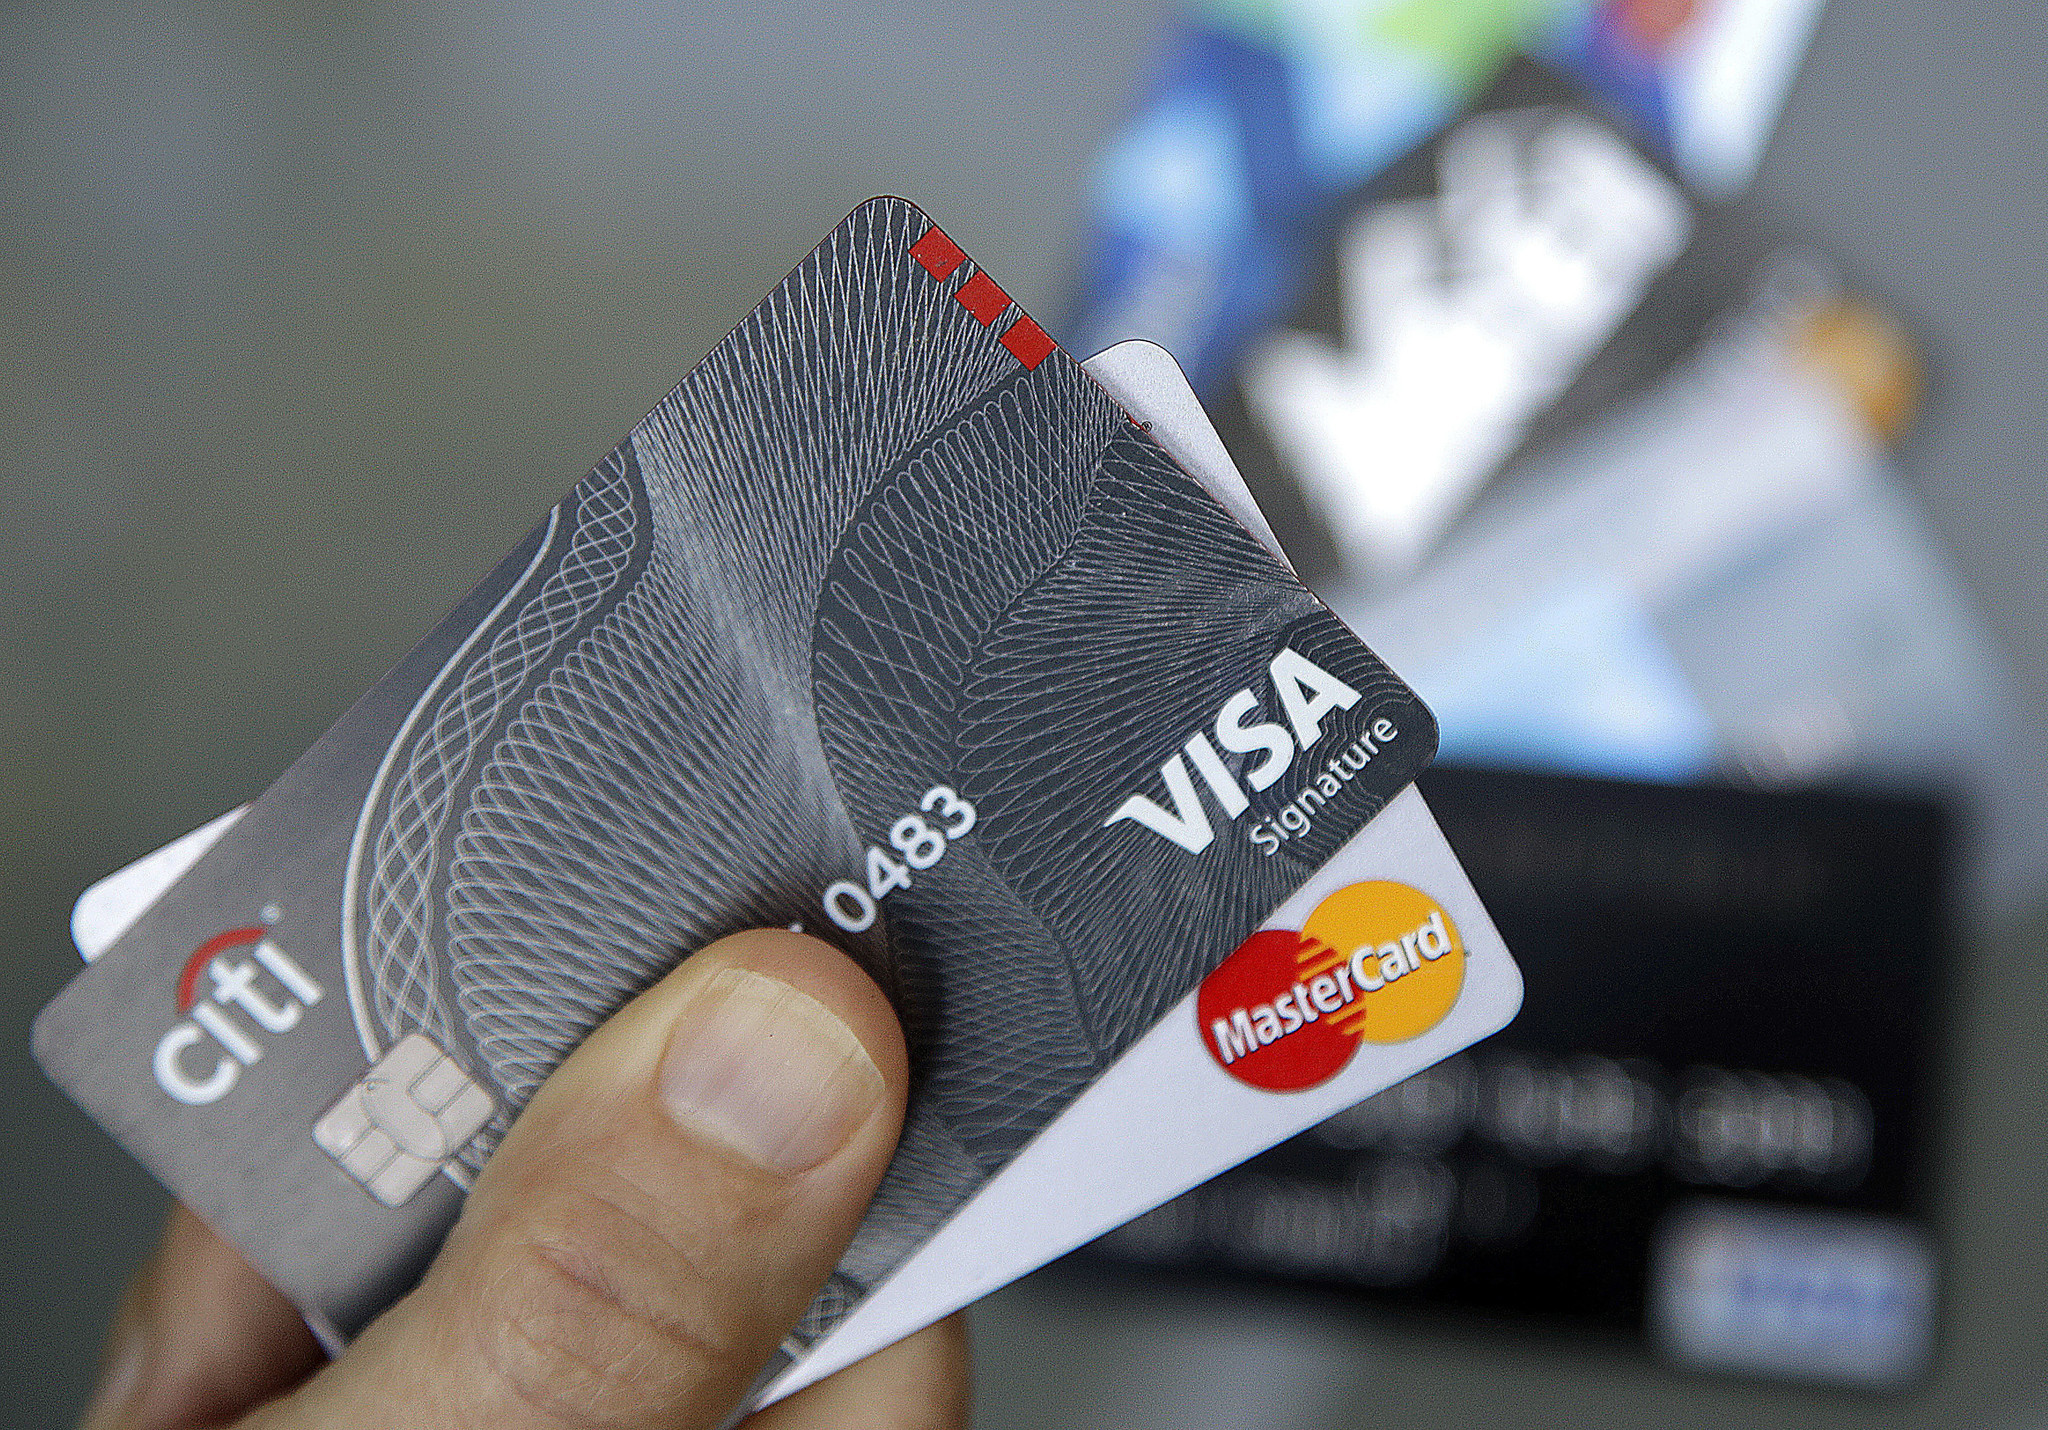 After the equifax breach heres how to freeze your credit to after the equifax breach heres how to freeze your credit to protect your identity chicago tribune reheart Gallery